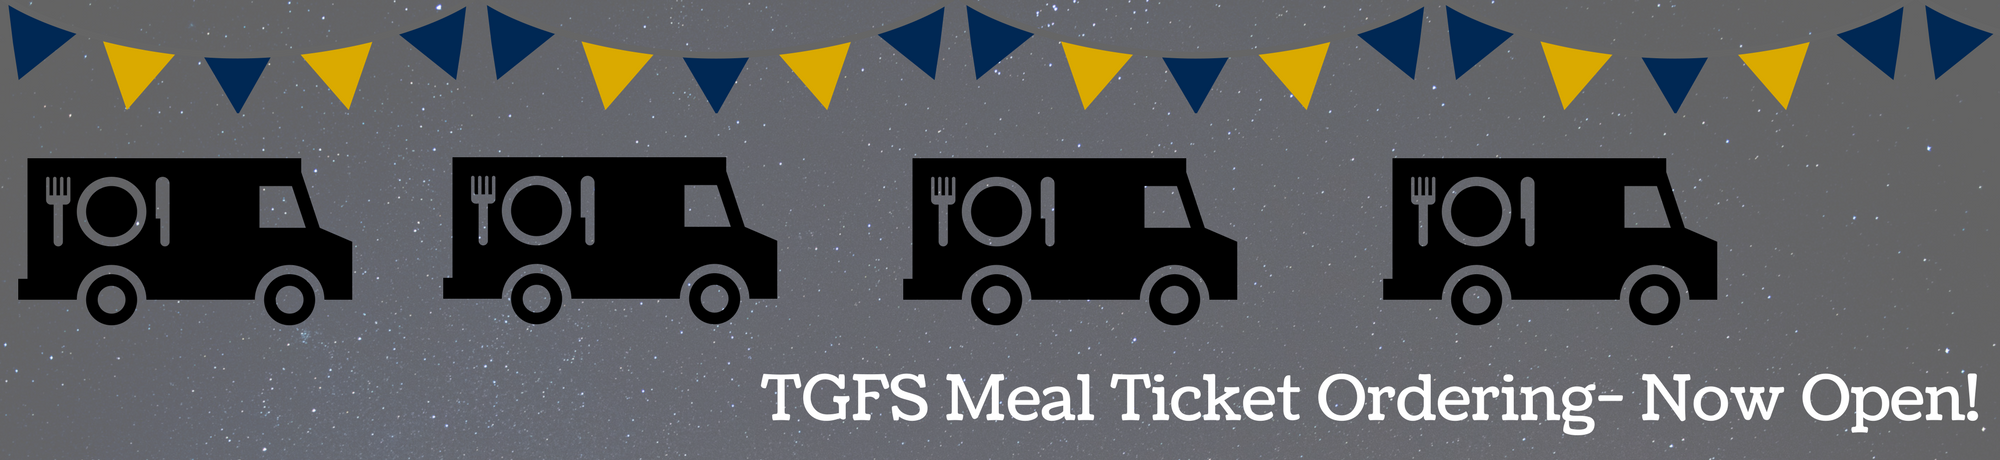 TGFS Meal Ordering is Now Open